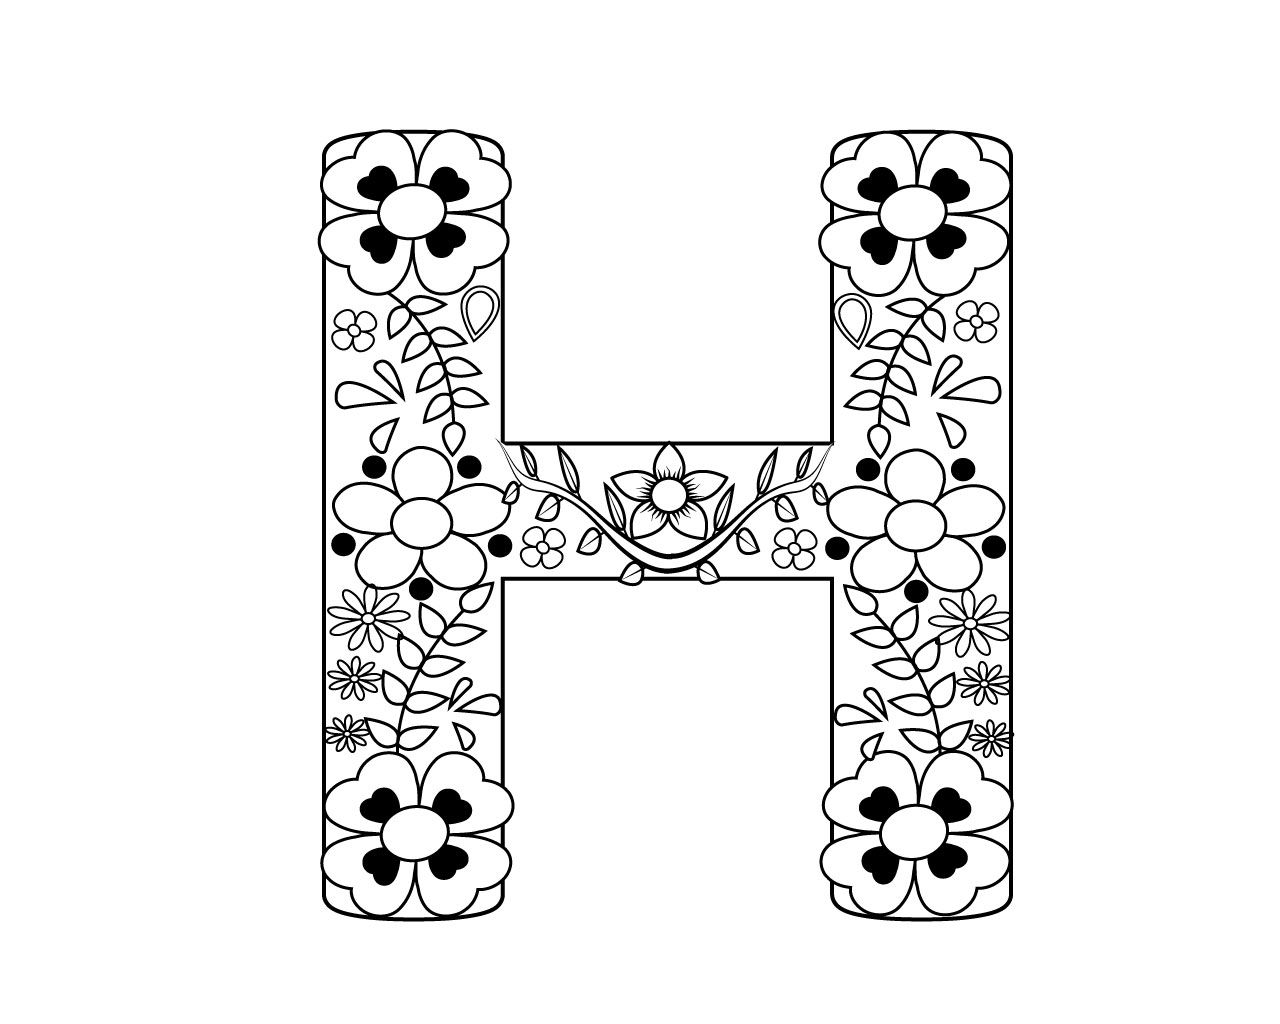 Letter H Coloring Pages For Adults Alphabet Coloring Pages Coloring Pages Love Coloring Pages